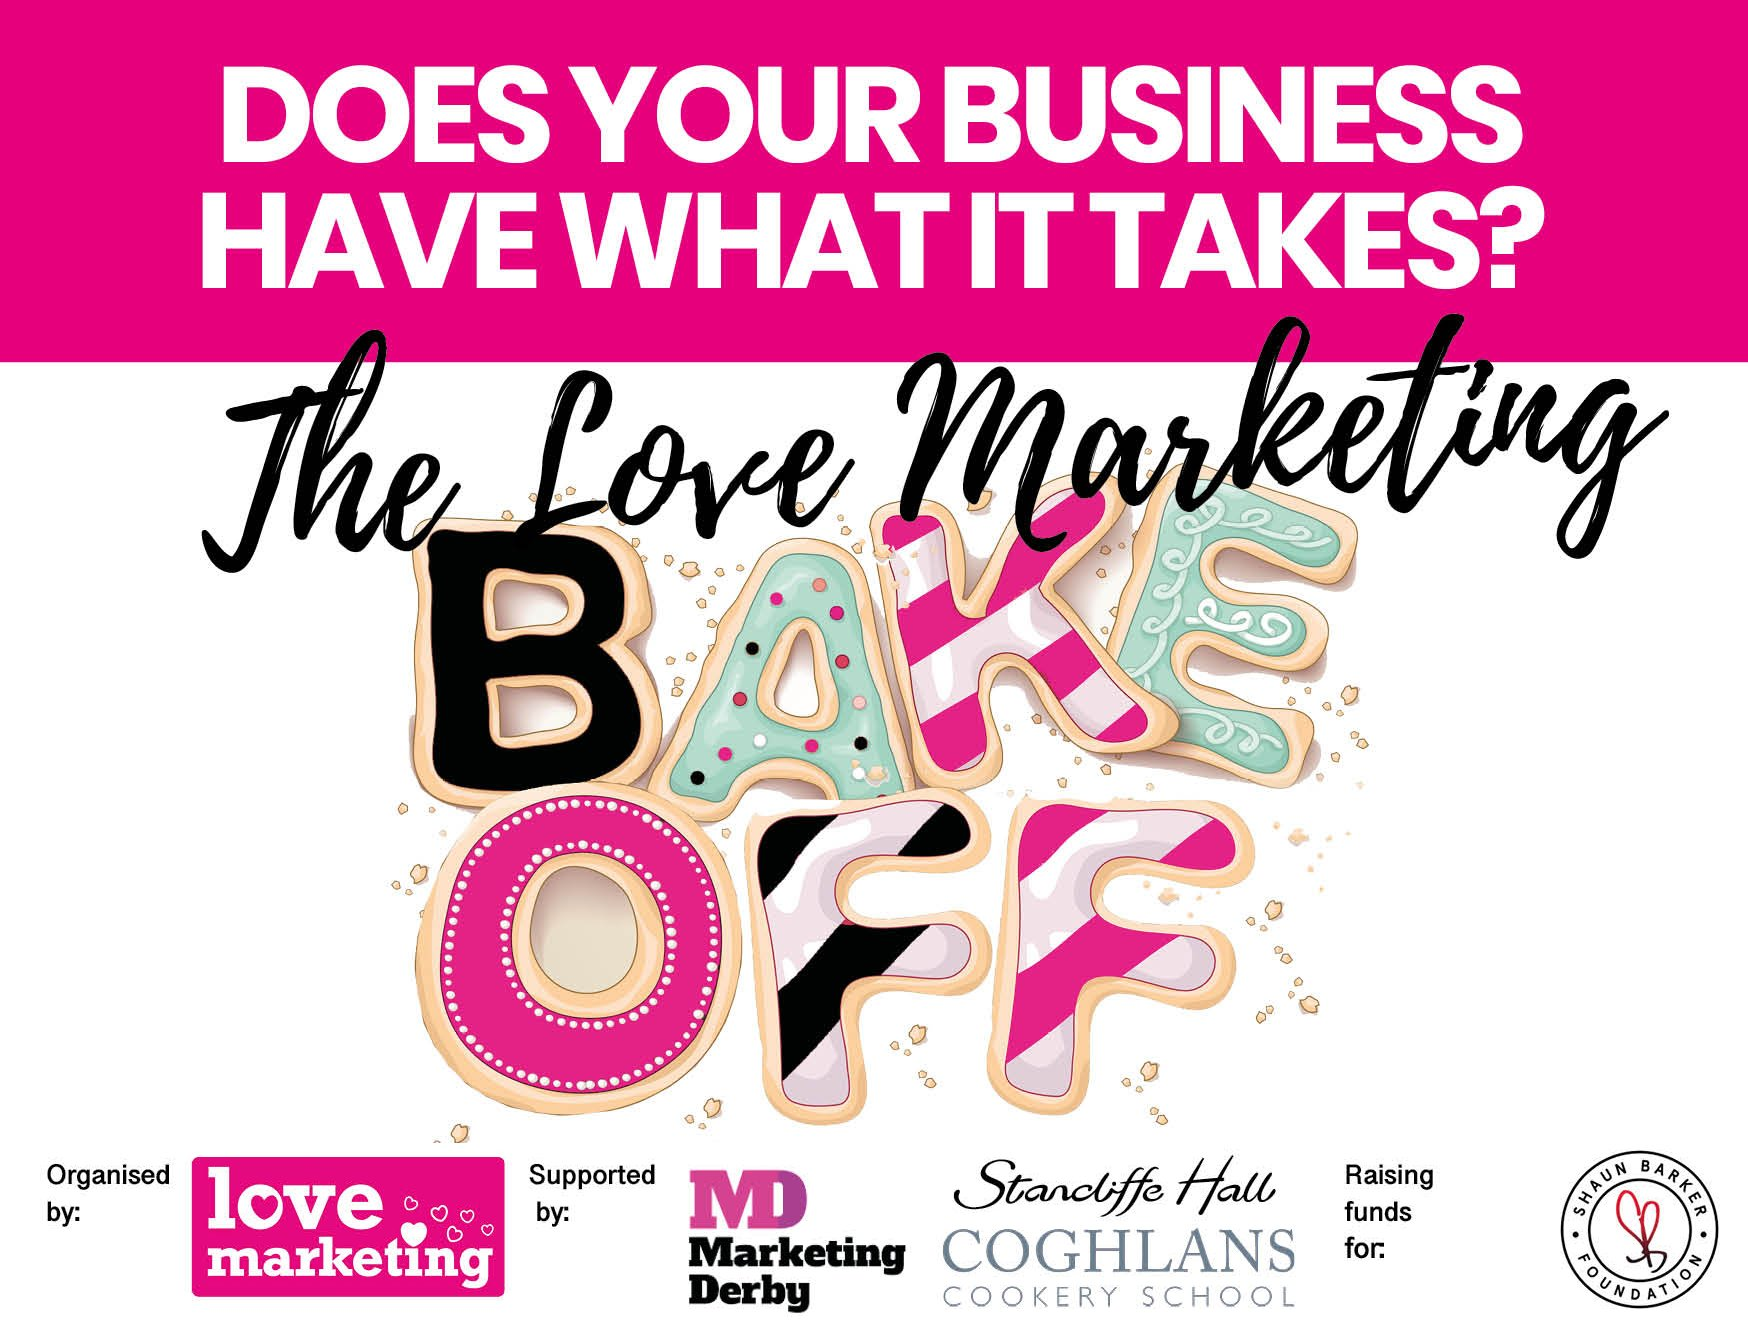 THE LOVE MARKETING BAKE OFF: DO YOU HAVE WHAT IT TAKES?